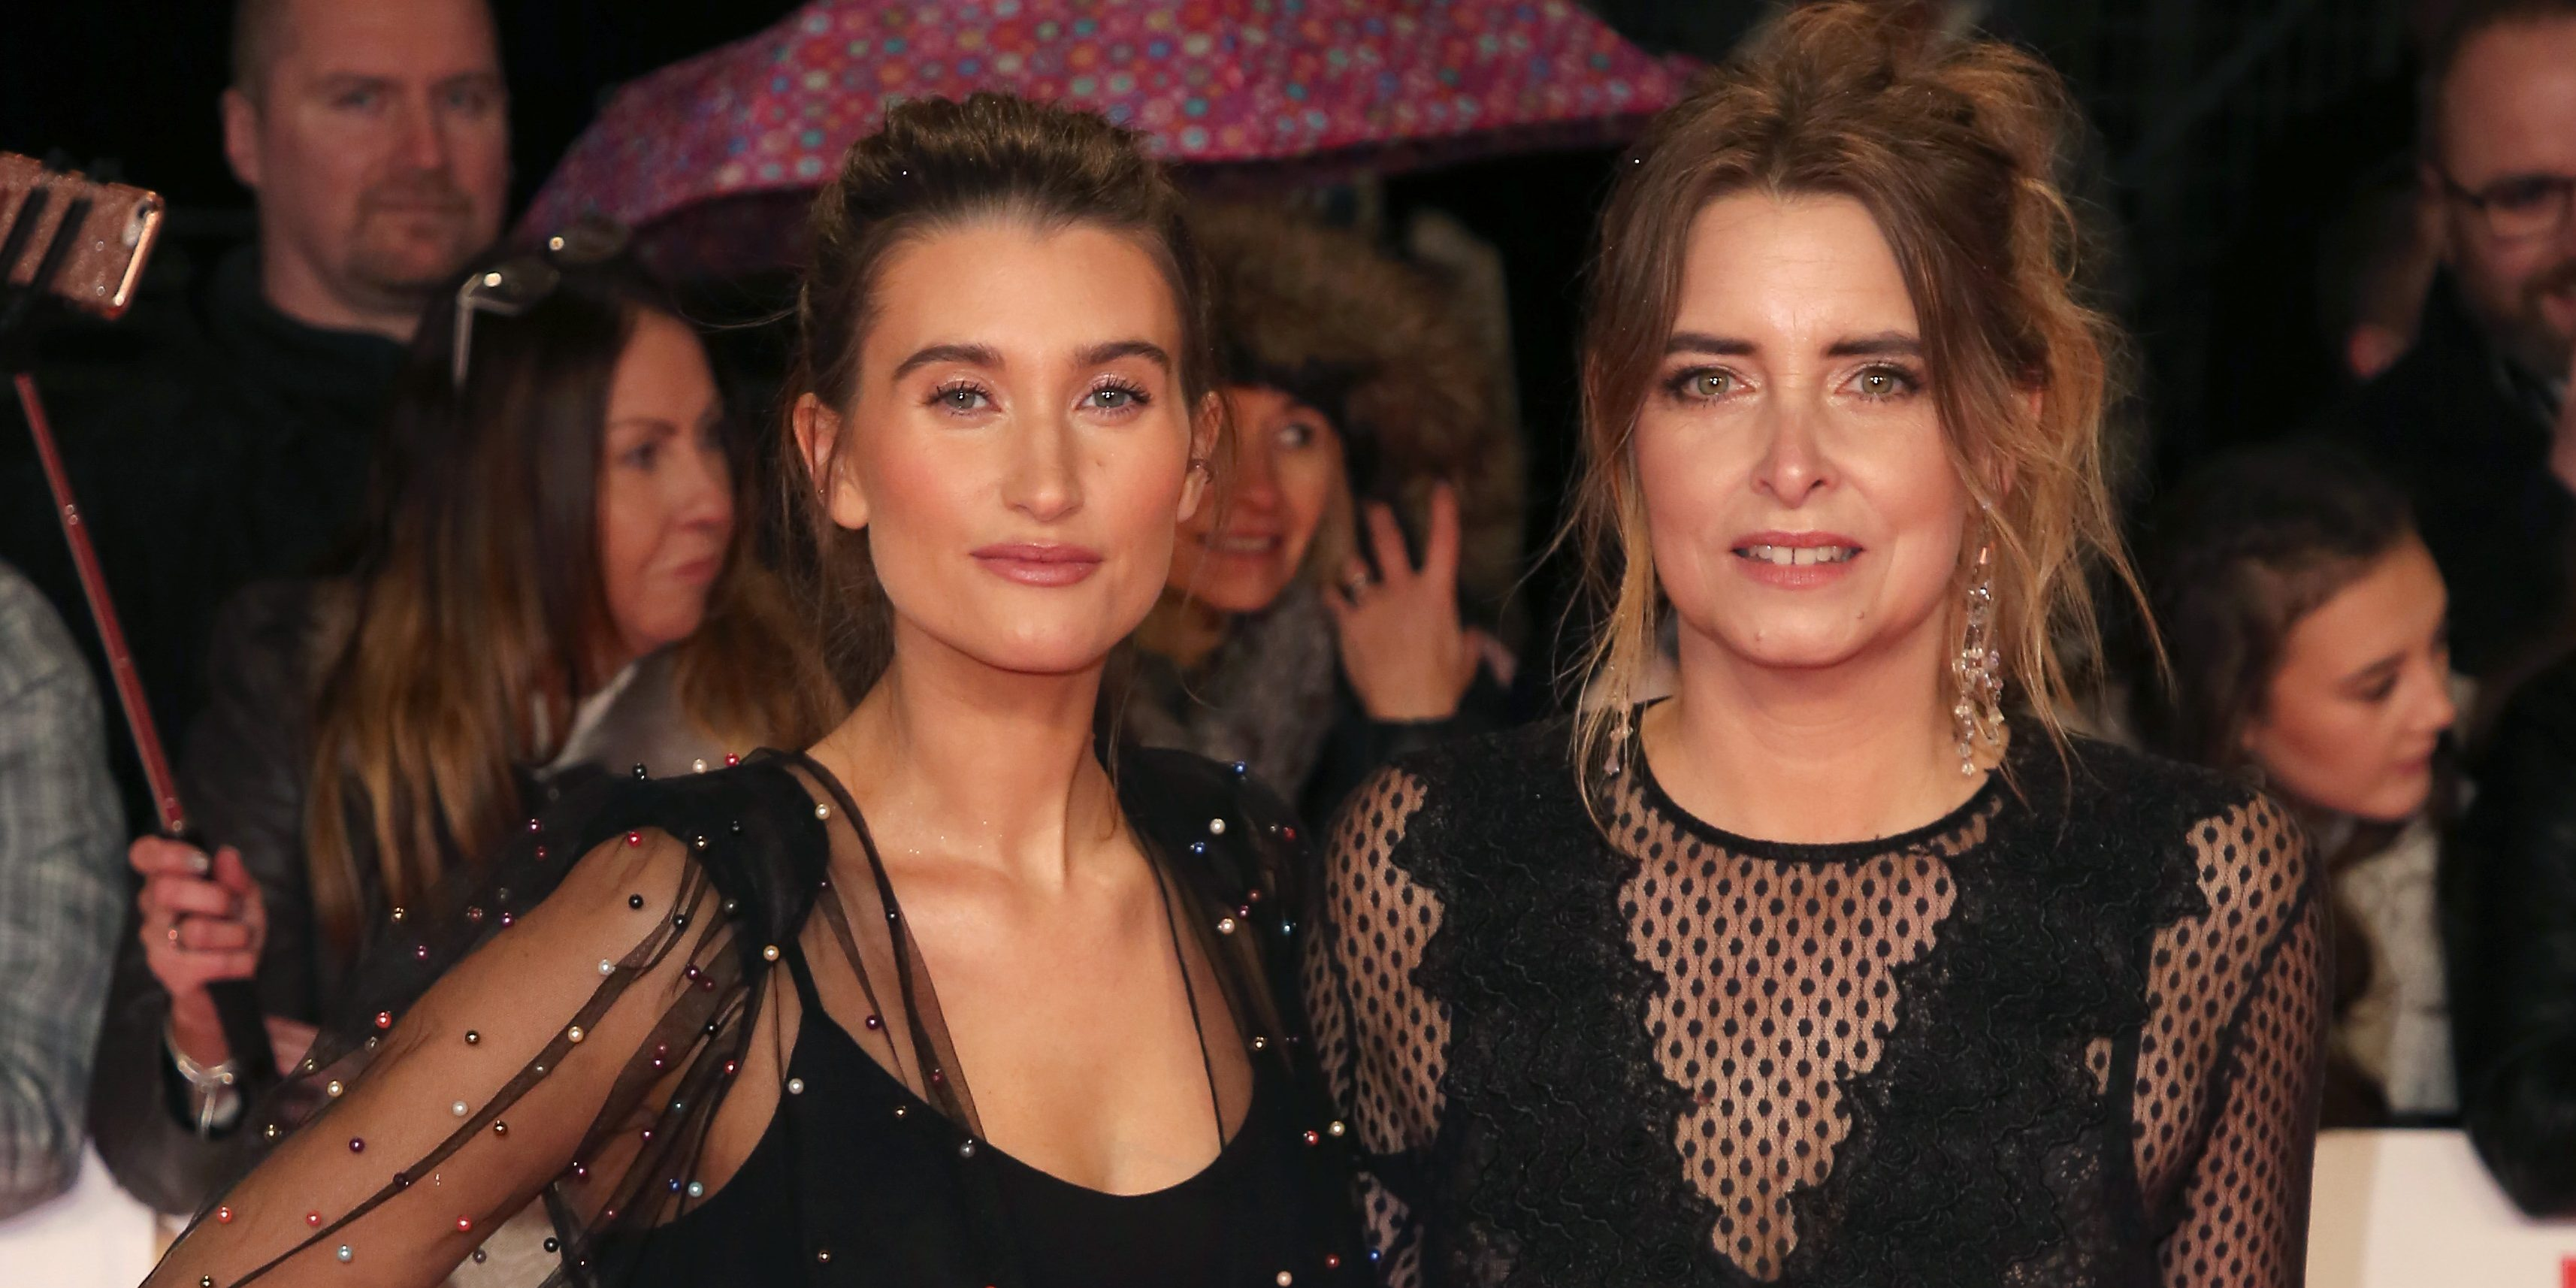 Charley Webb reunites with Emmerdale co-star Emma Atkins to celebrate New Year's Eve